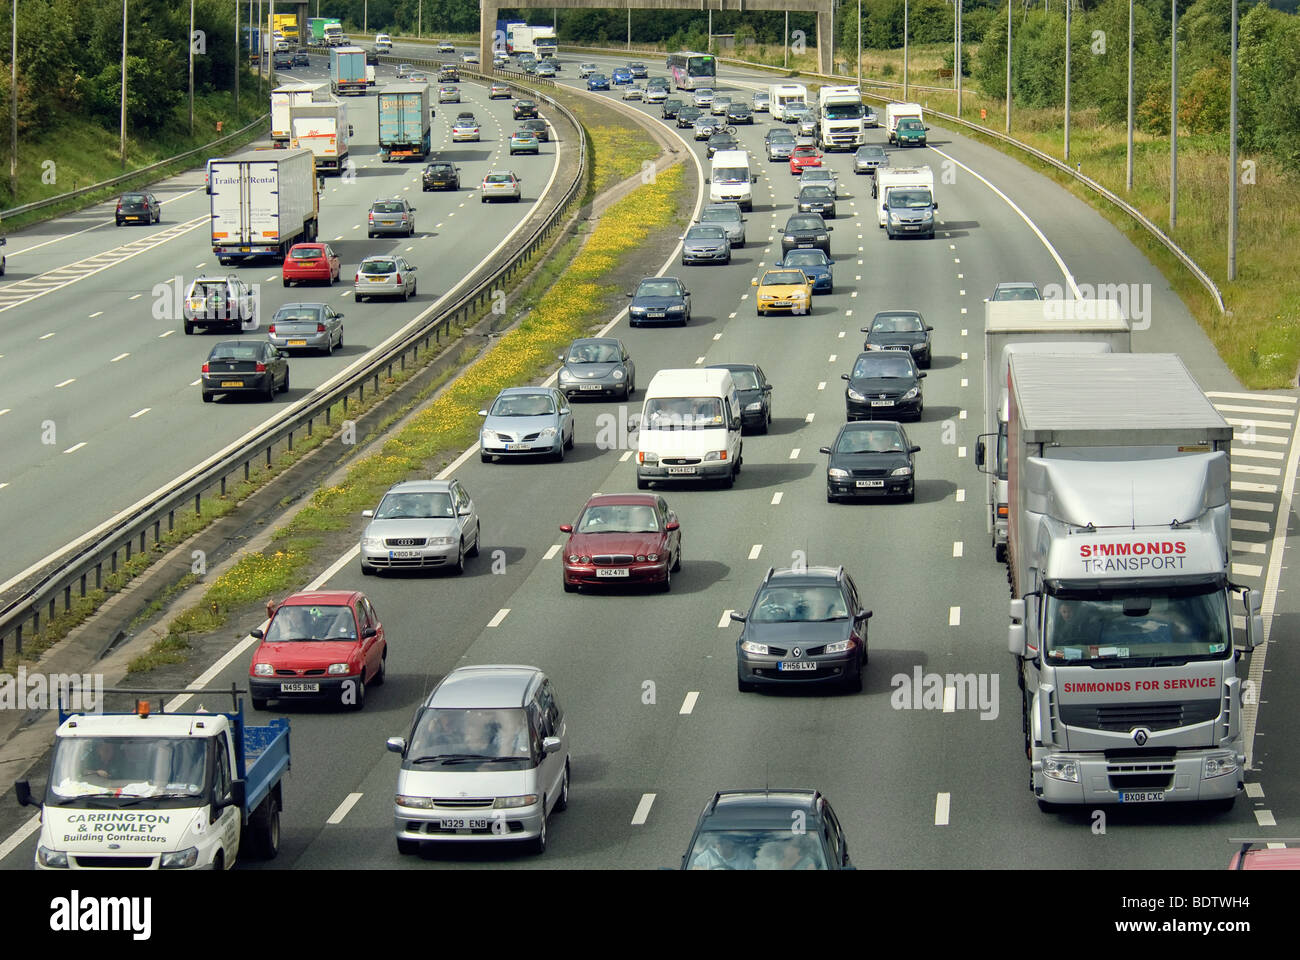 A build up of traffic on a British motorway. - Stock Image